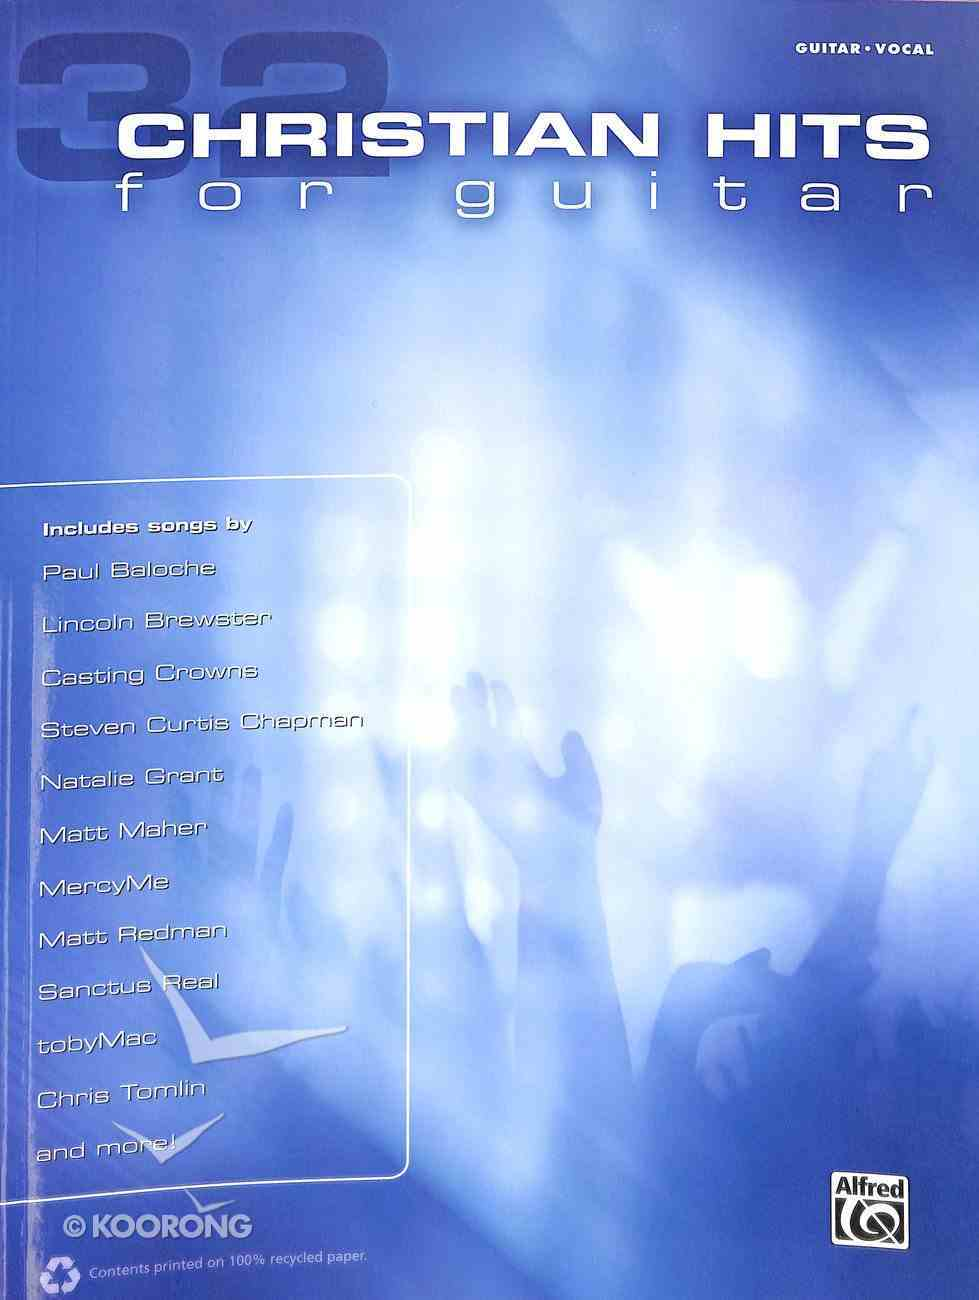 32 Christian Hits For Guitar (Guitar/Vocal) (Music Book) Paperback